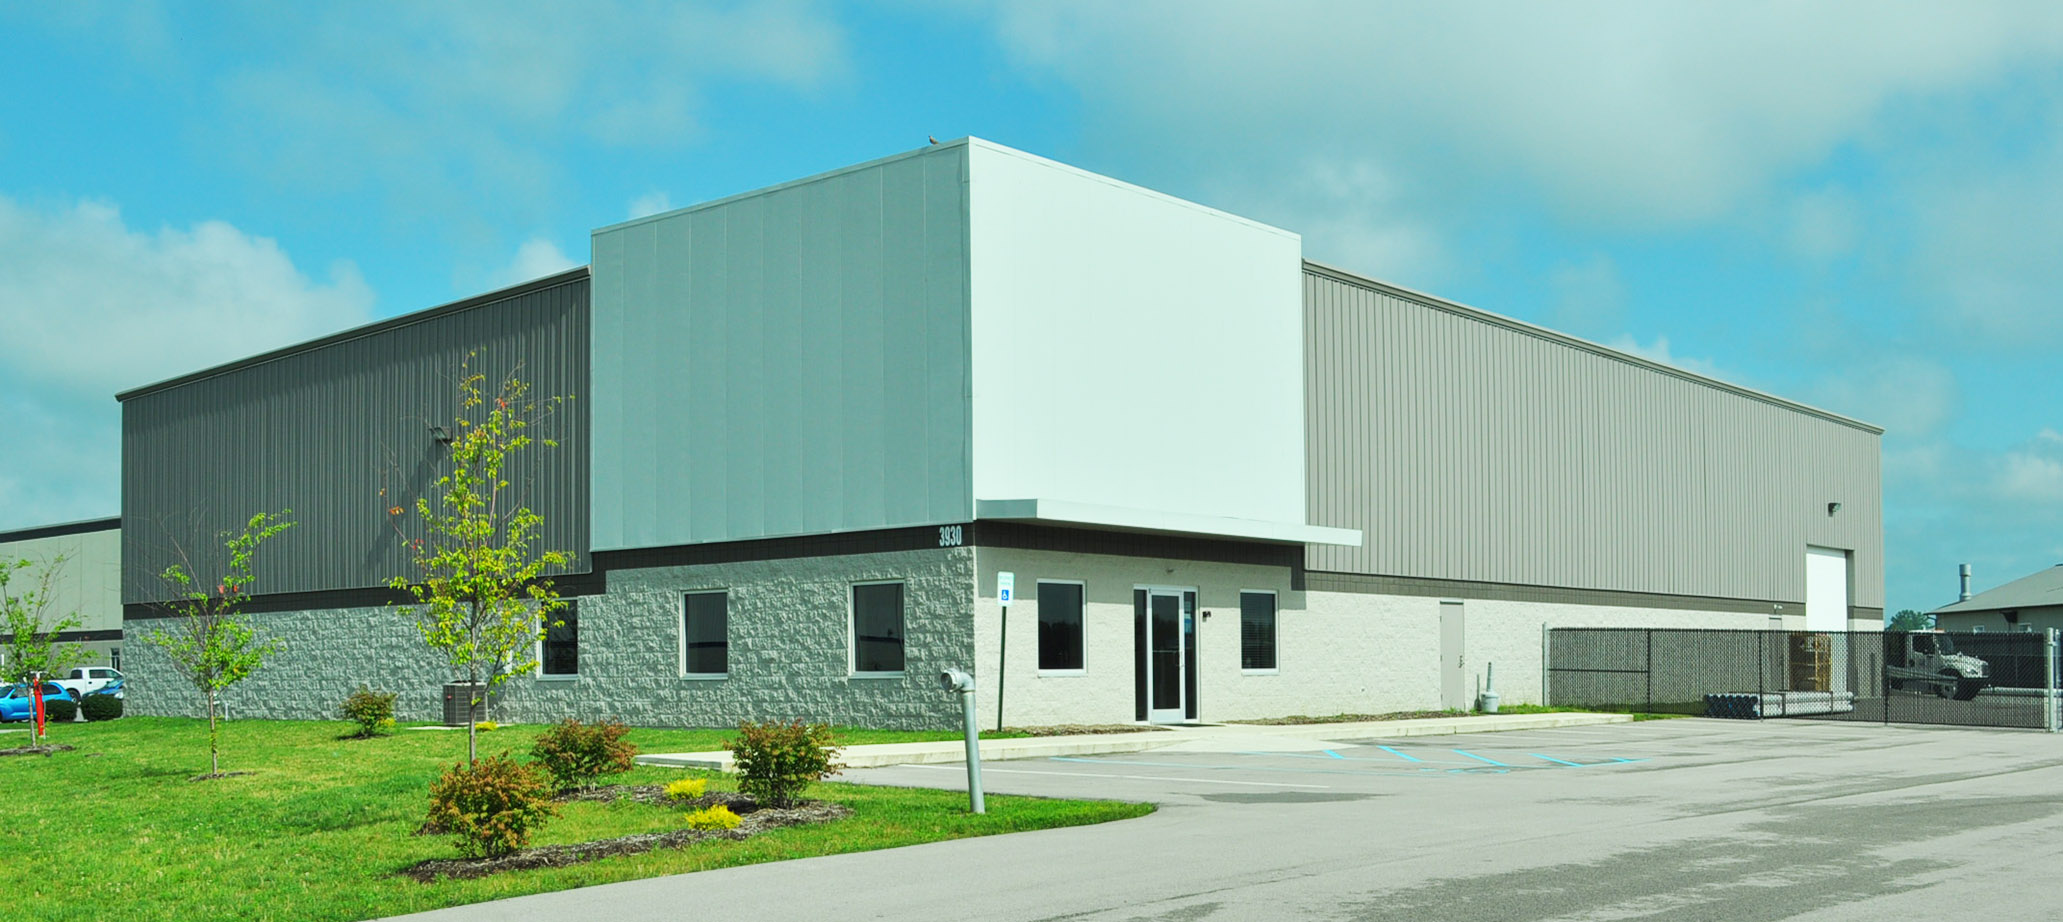 13,350 sq ft Office/Warehouse Building. Features a VP Building, perimeter masonry, and insulated metal panel